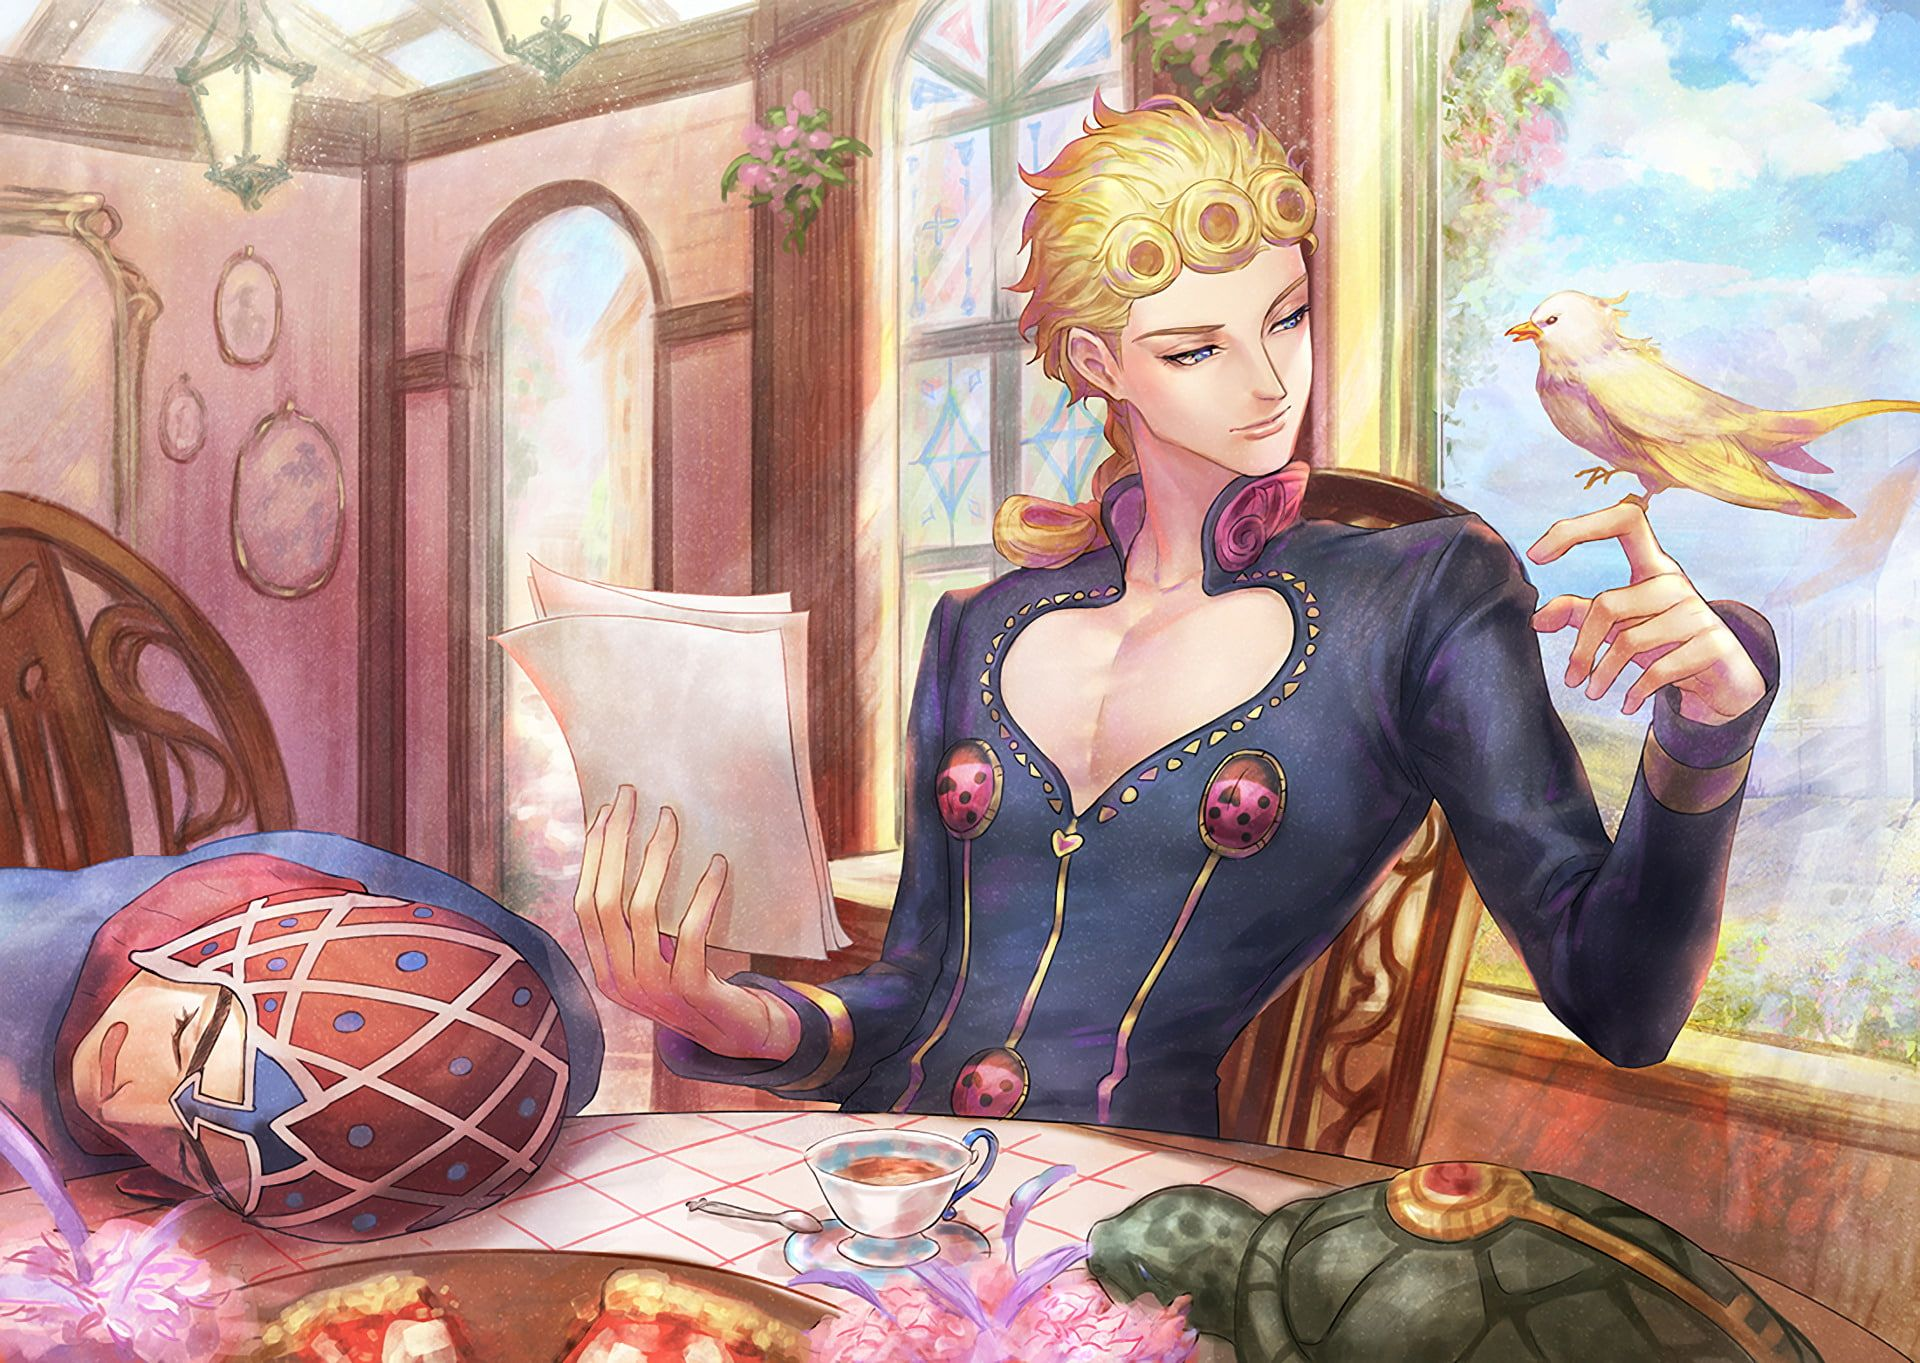 Anime Jojo S Bizarre Adventure Giorno Giovanna 1080p Wallpaper Hdwallpaper Desktop Jojo Anime Jojo Bizarre Jojo Bizzare Adventure